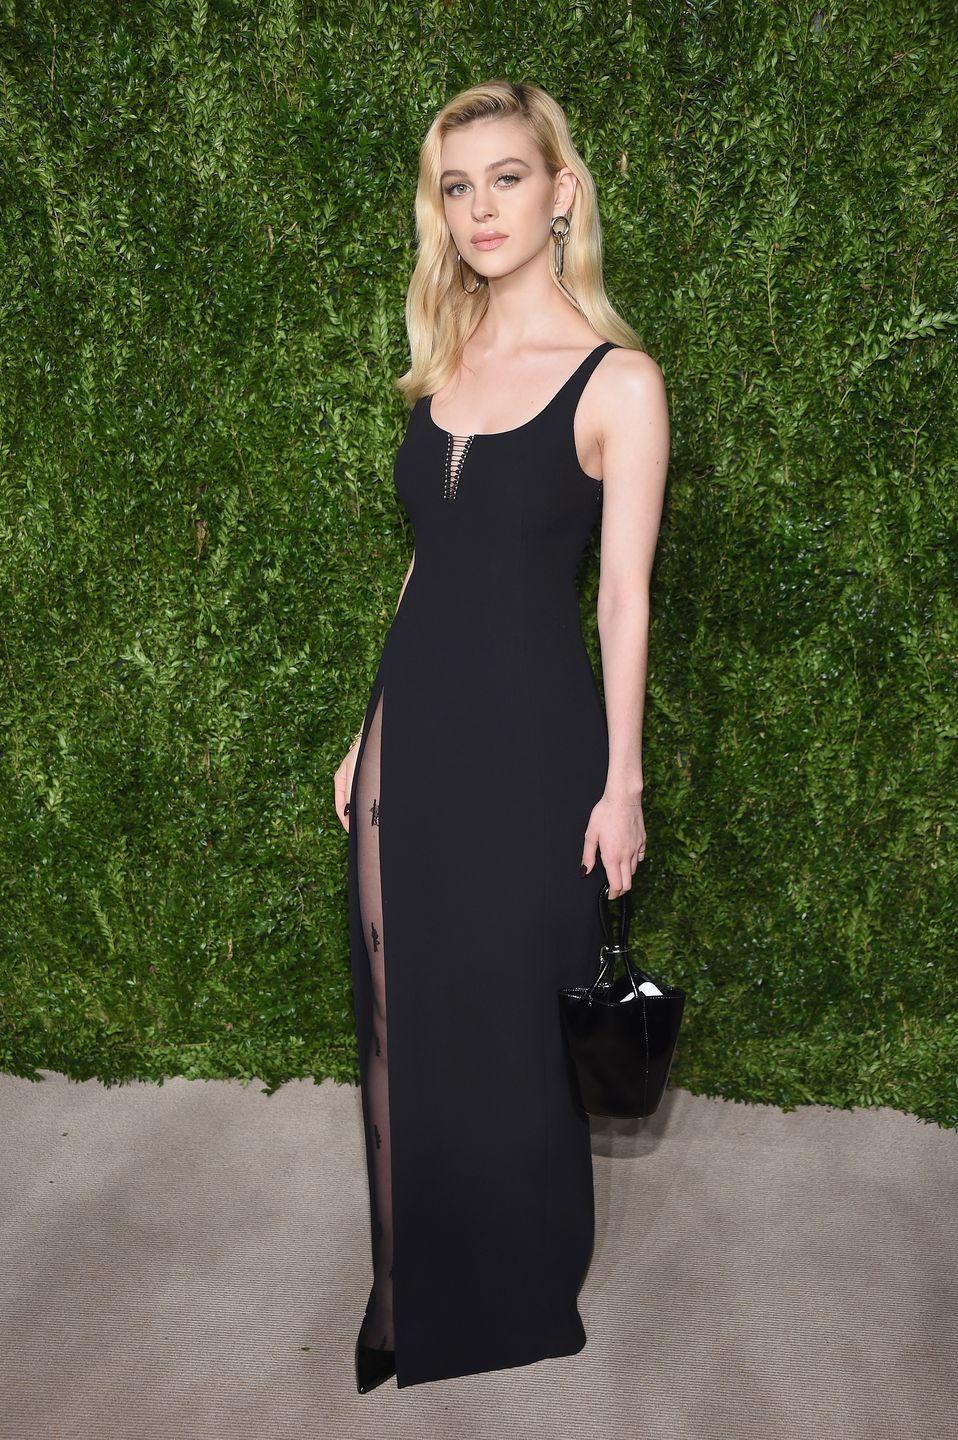 <p>Peltz chose to wear a black floor-length dress with a lace tie-up at the bust, teamed with a black bag and black printed tights to the CFDA/Vogue Fashion Fund Gala. <br></p>